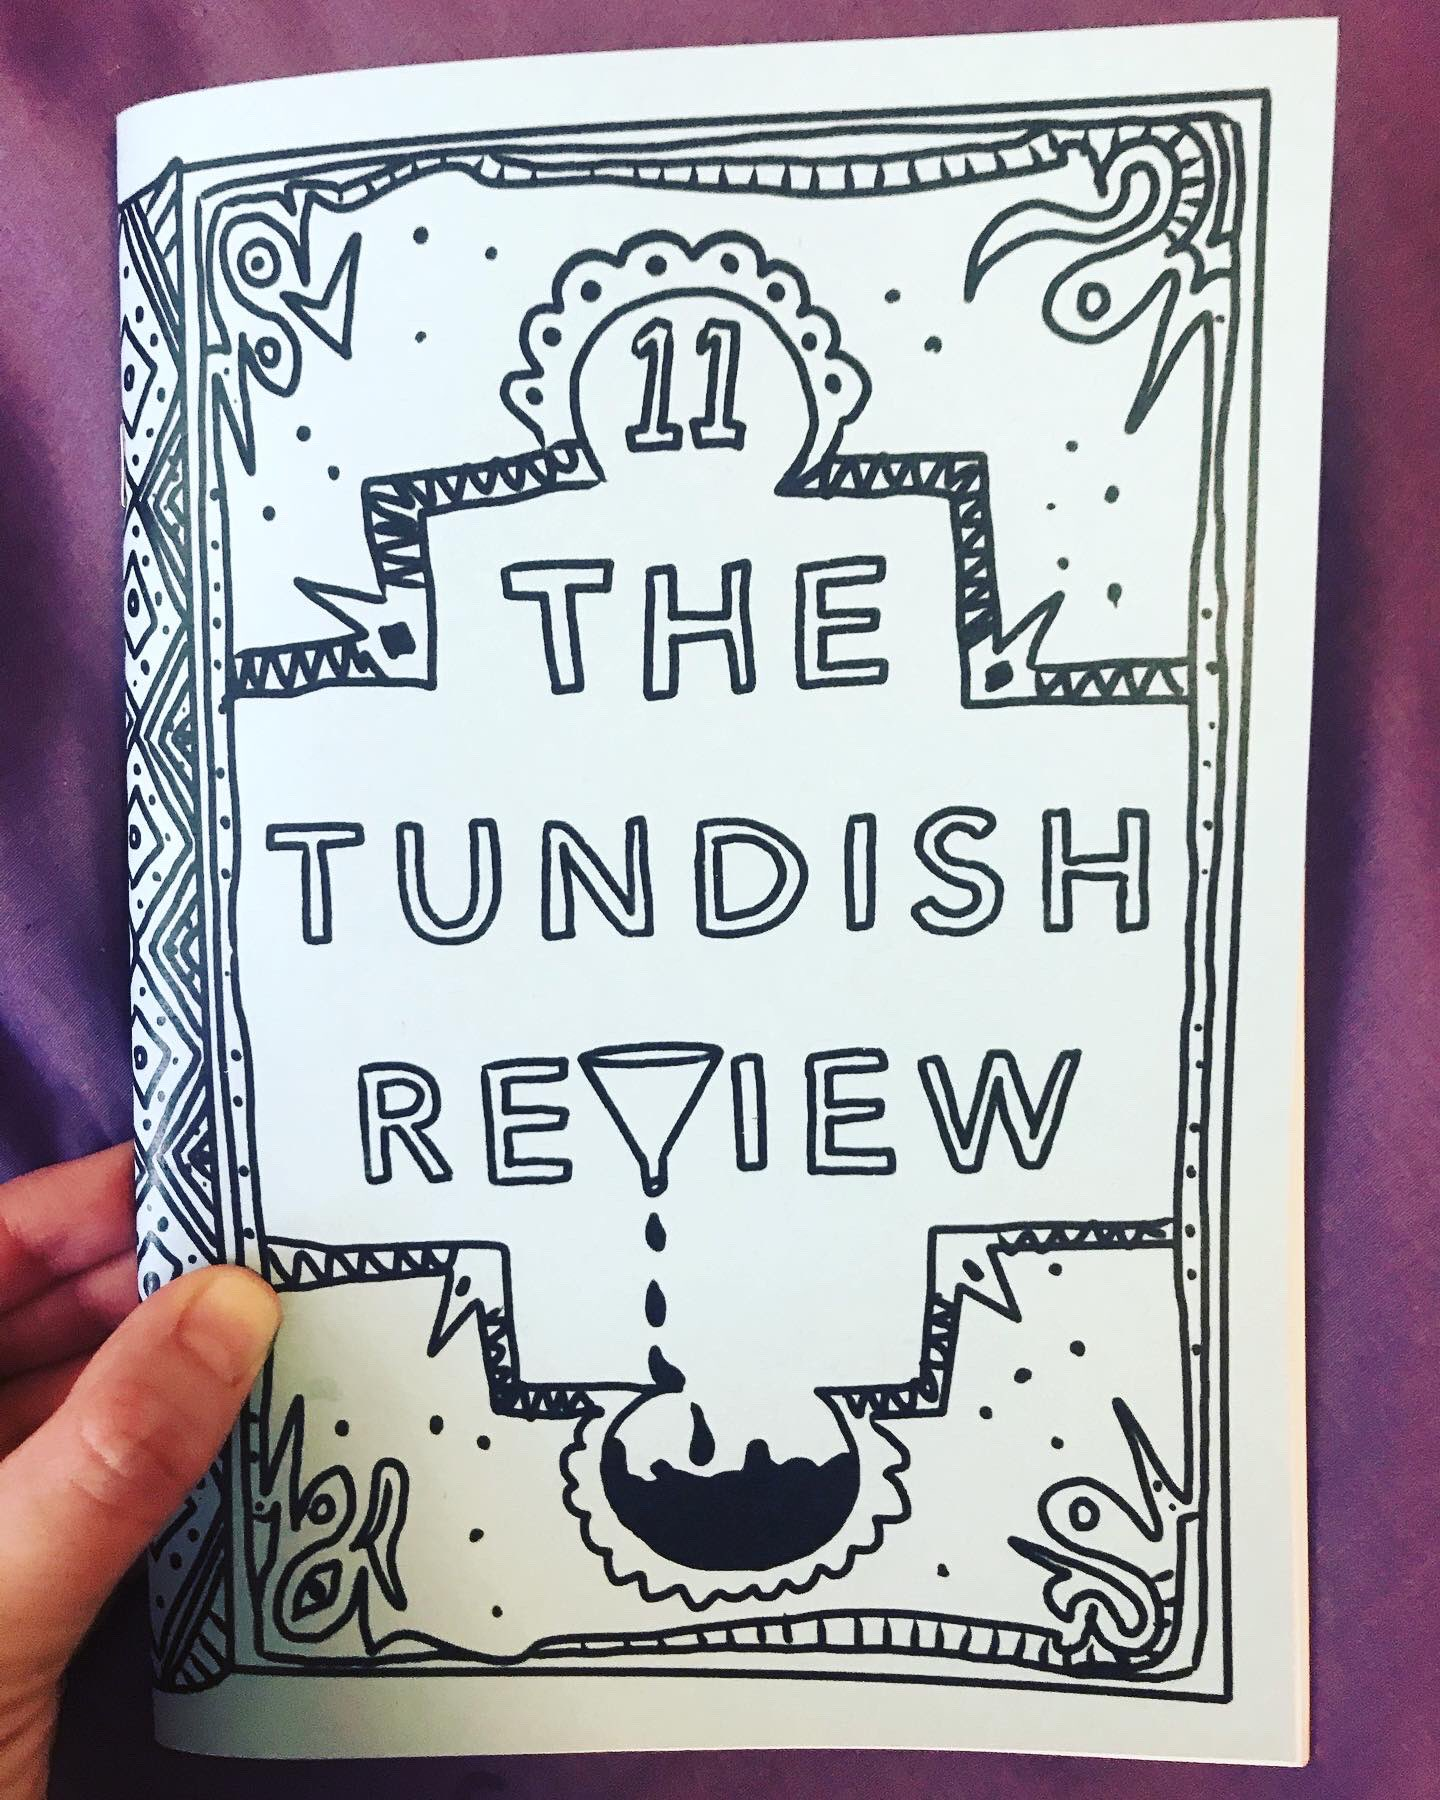 Photo of a copy of the Tundish Review Issue 11